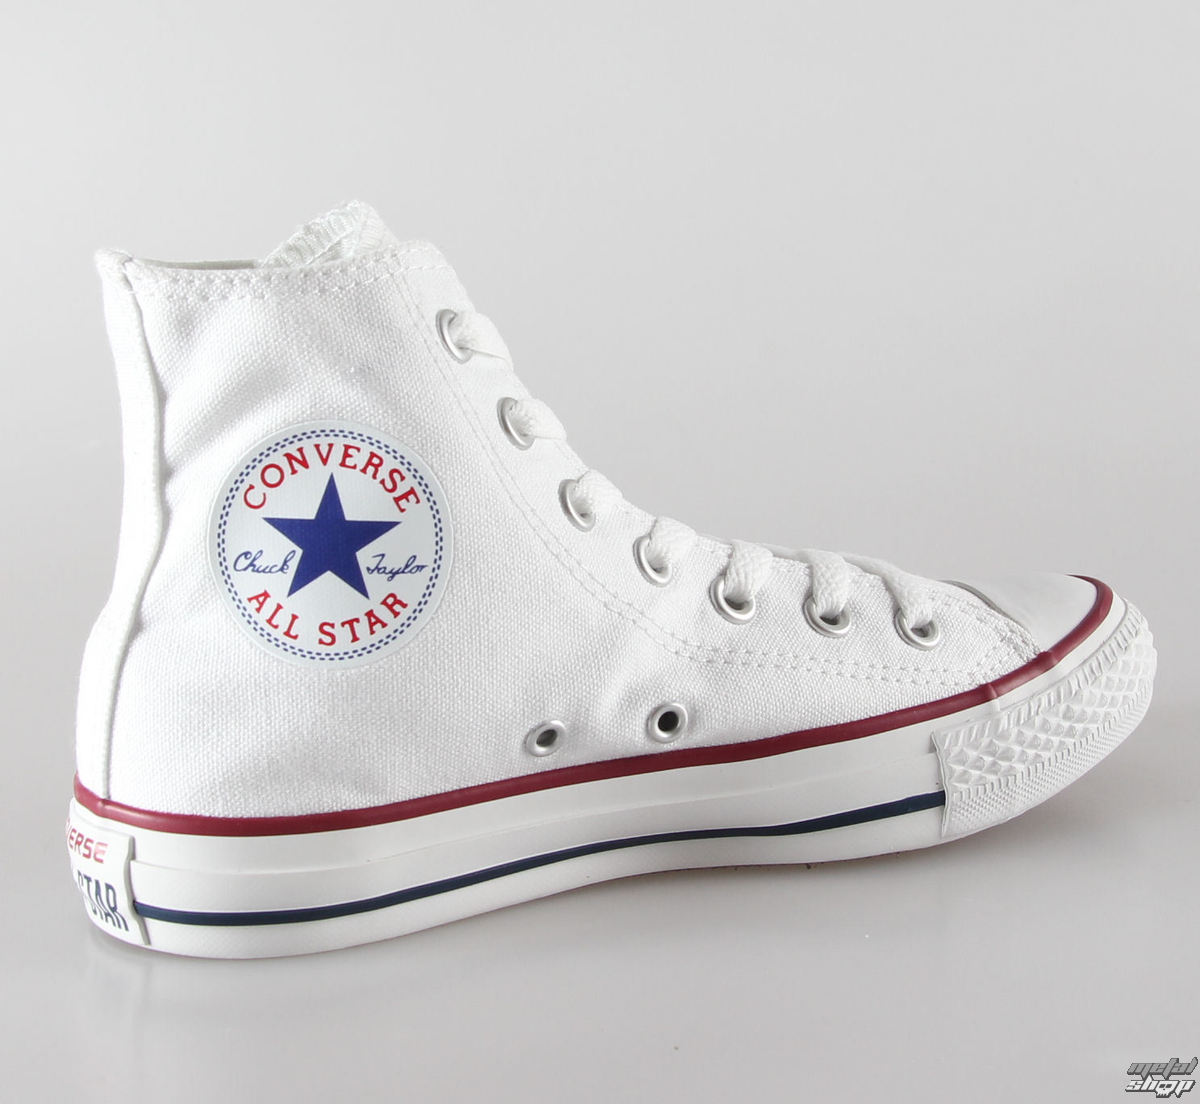 converse chuck taylor all star white. Black Bedroom Furniture Sets. Home Design Ideas